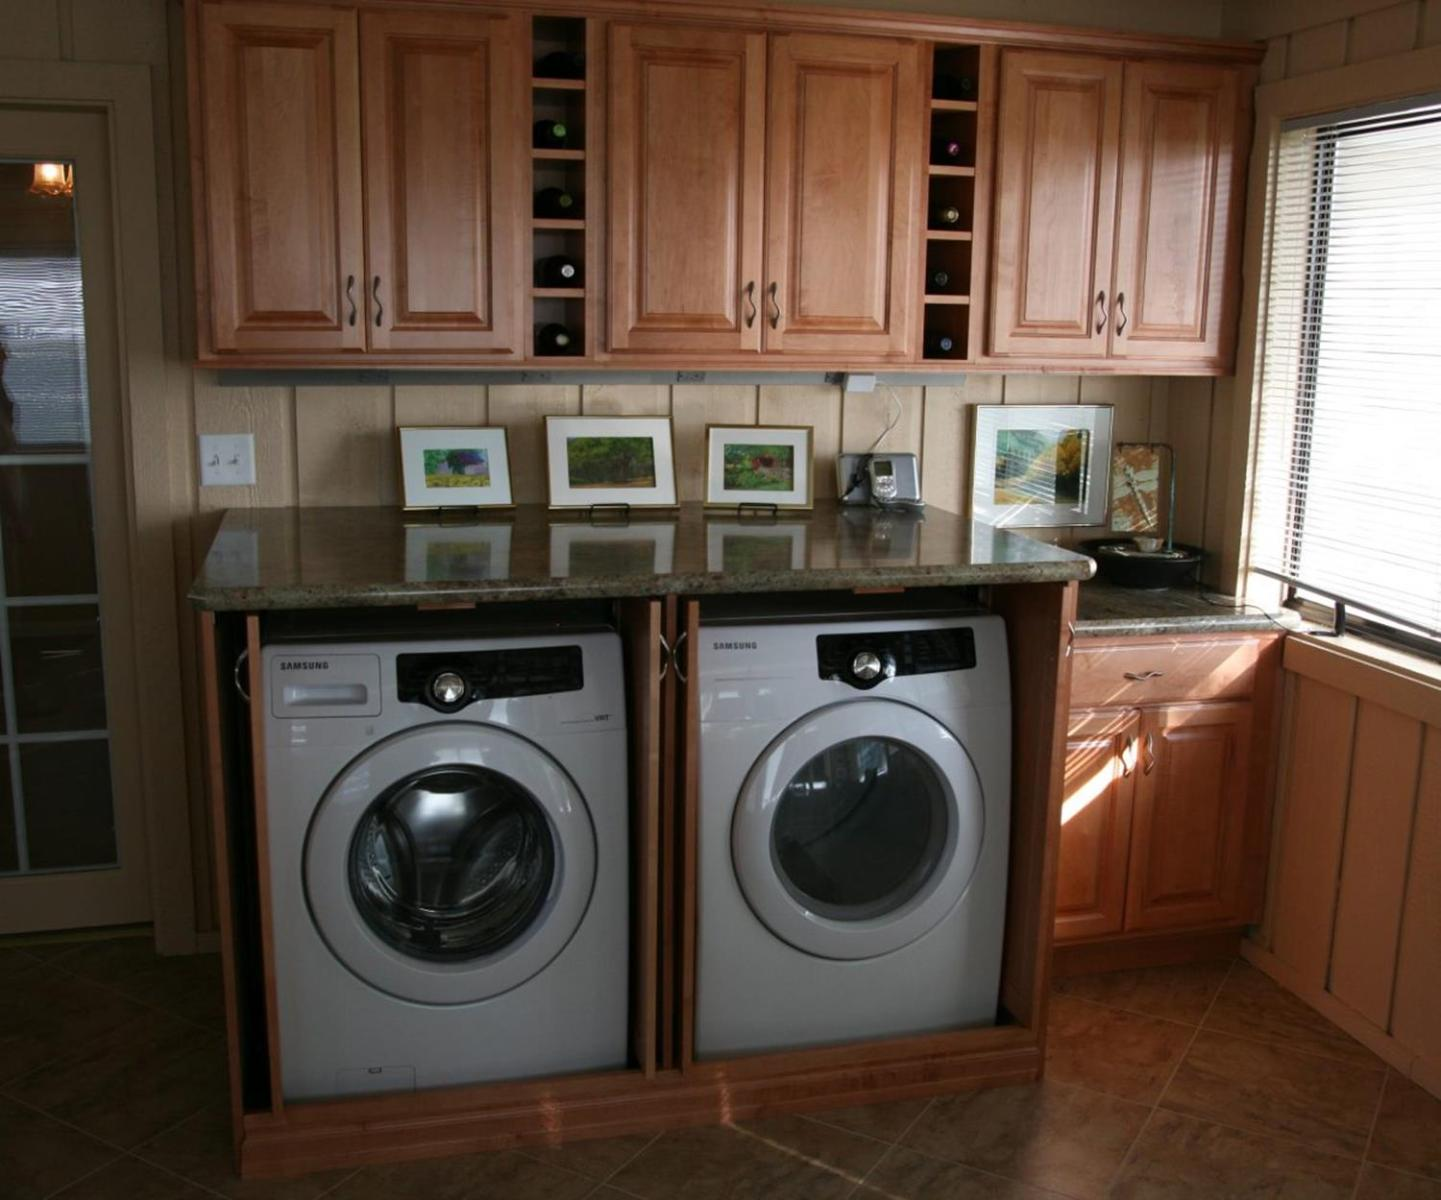 Best Cheap IKEA Cabinets Laundry Room Storage Ideas 37